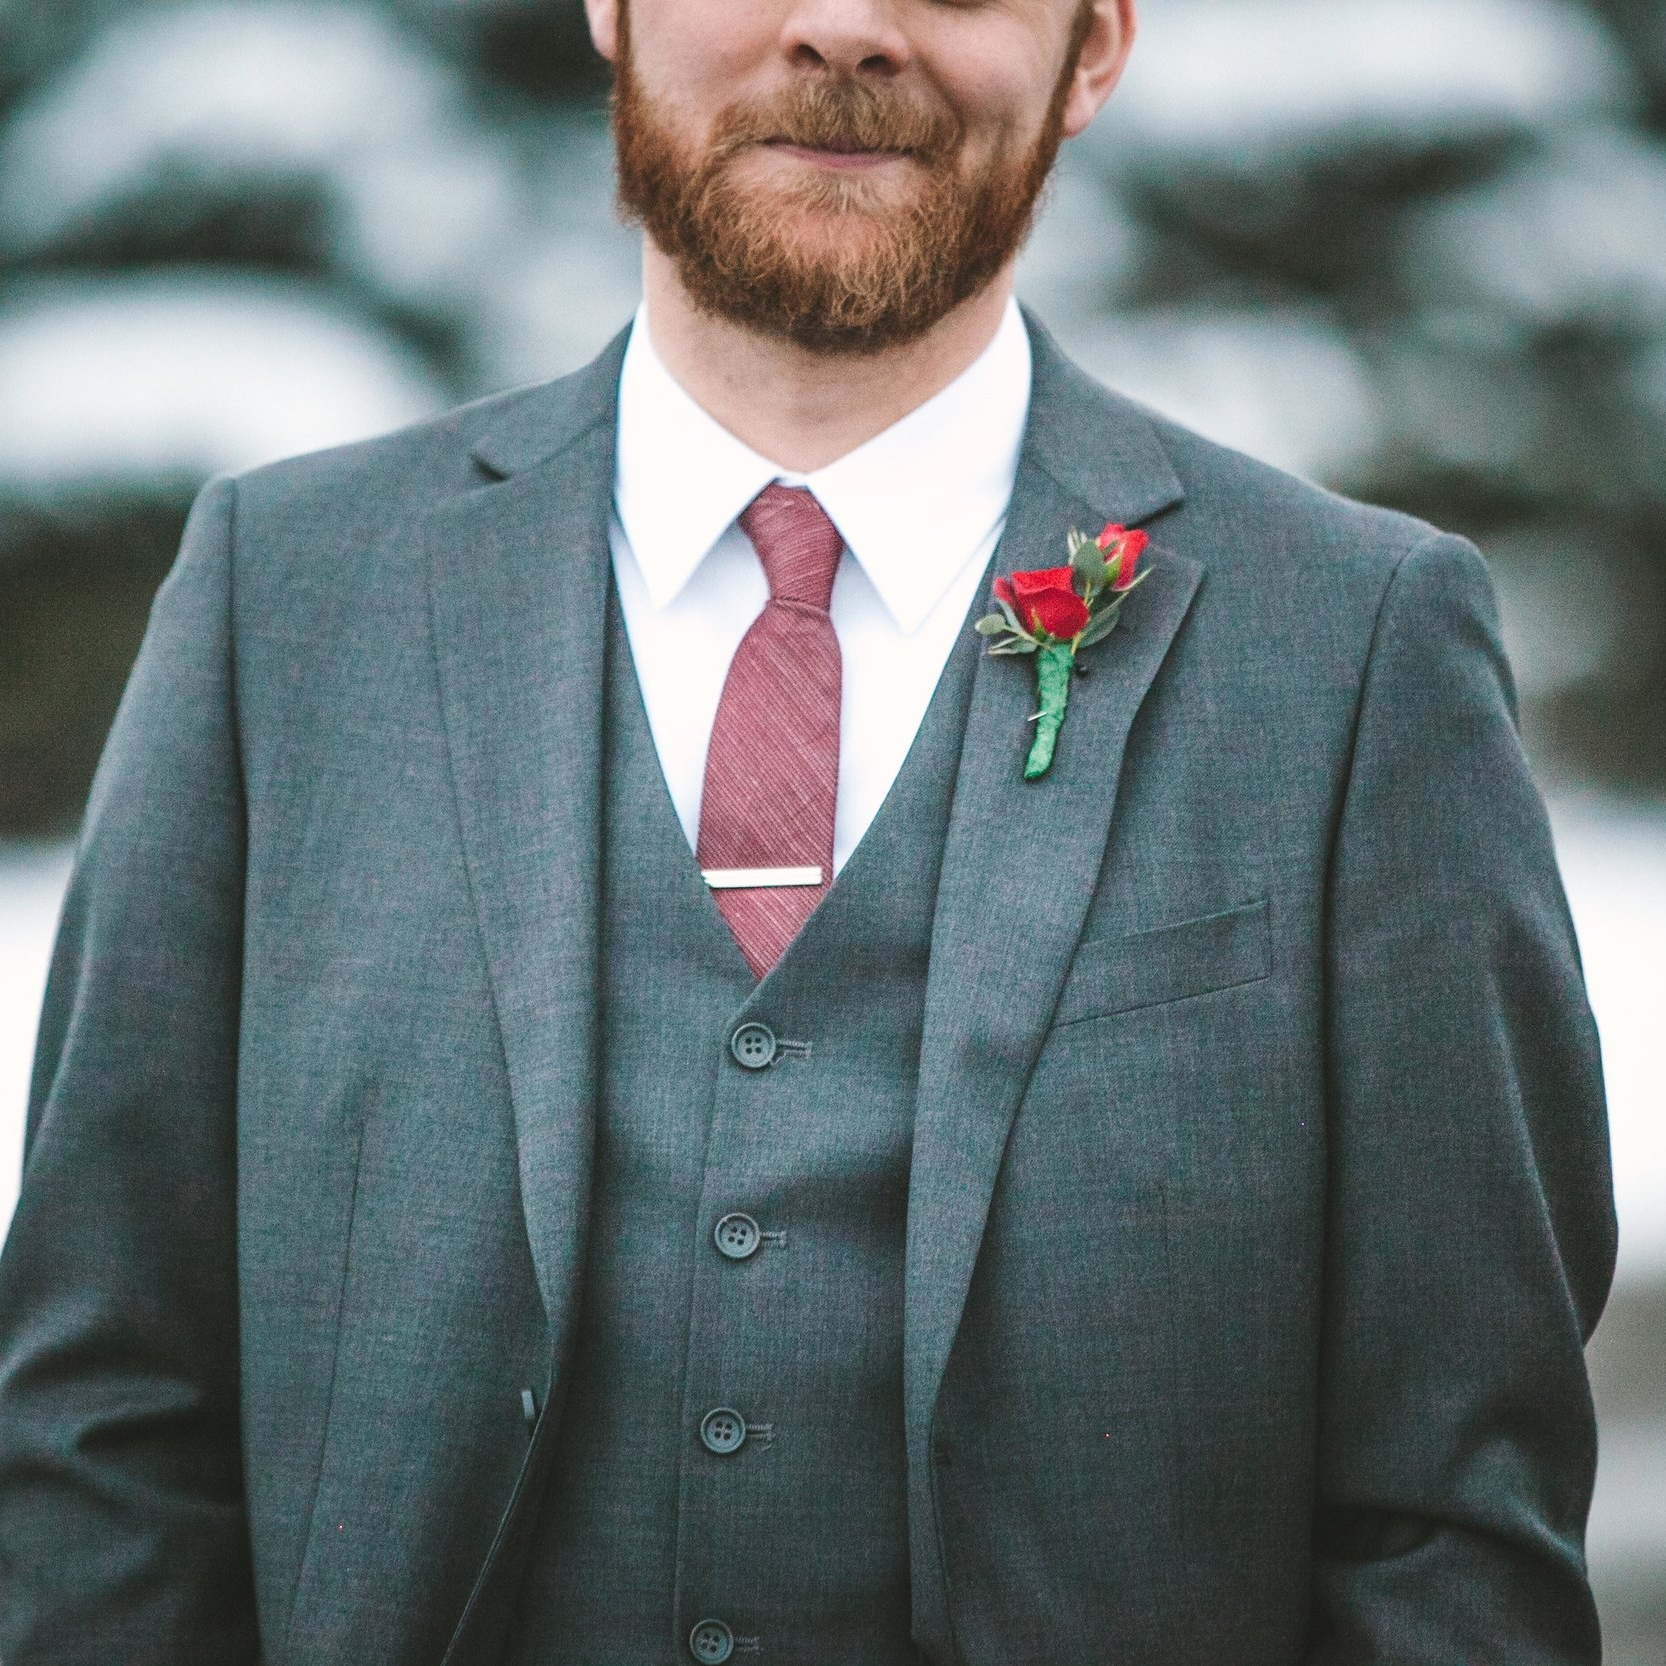 Winter Weddings - The winter months can give extraordinary character to your wedding